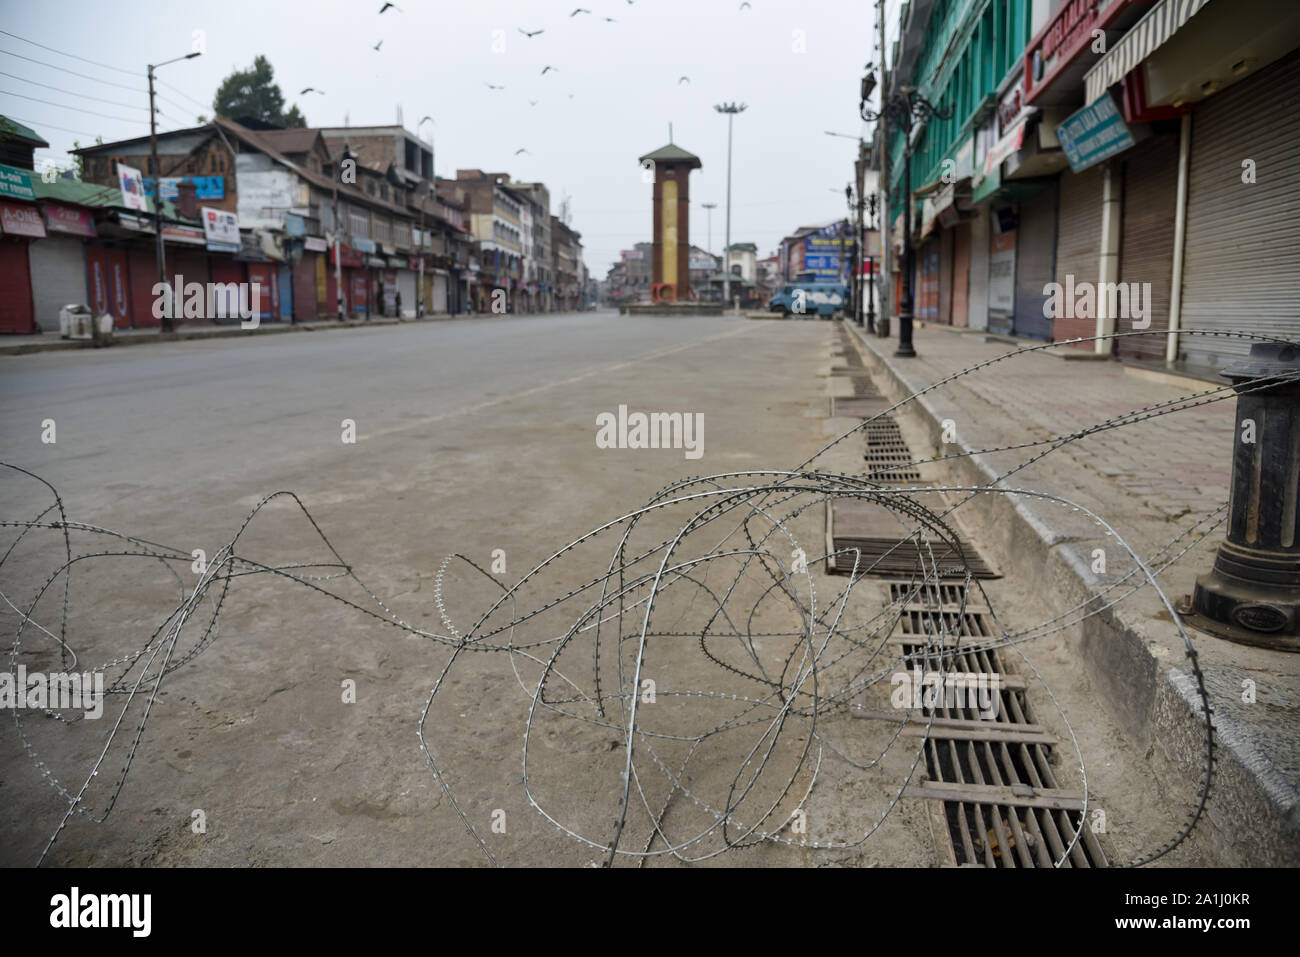 Deserted street with concertina wire during the restrictions in Srinagar.After the revocation of article 370 which gives the special status to Jammu & Kashmir, state authorities have imposed restrictions across Kashmir to prevent protests. Stock Photo